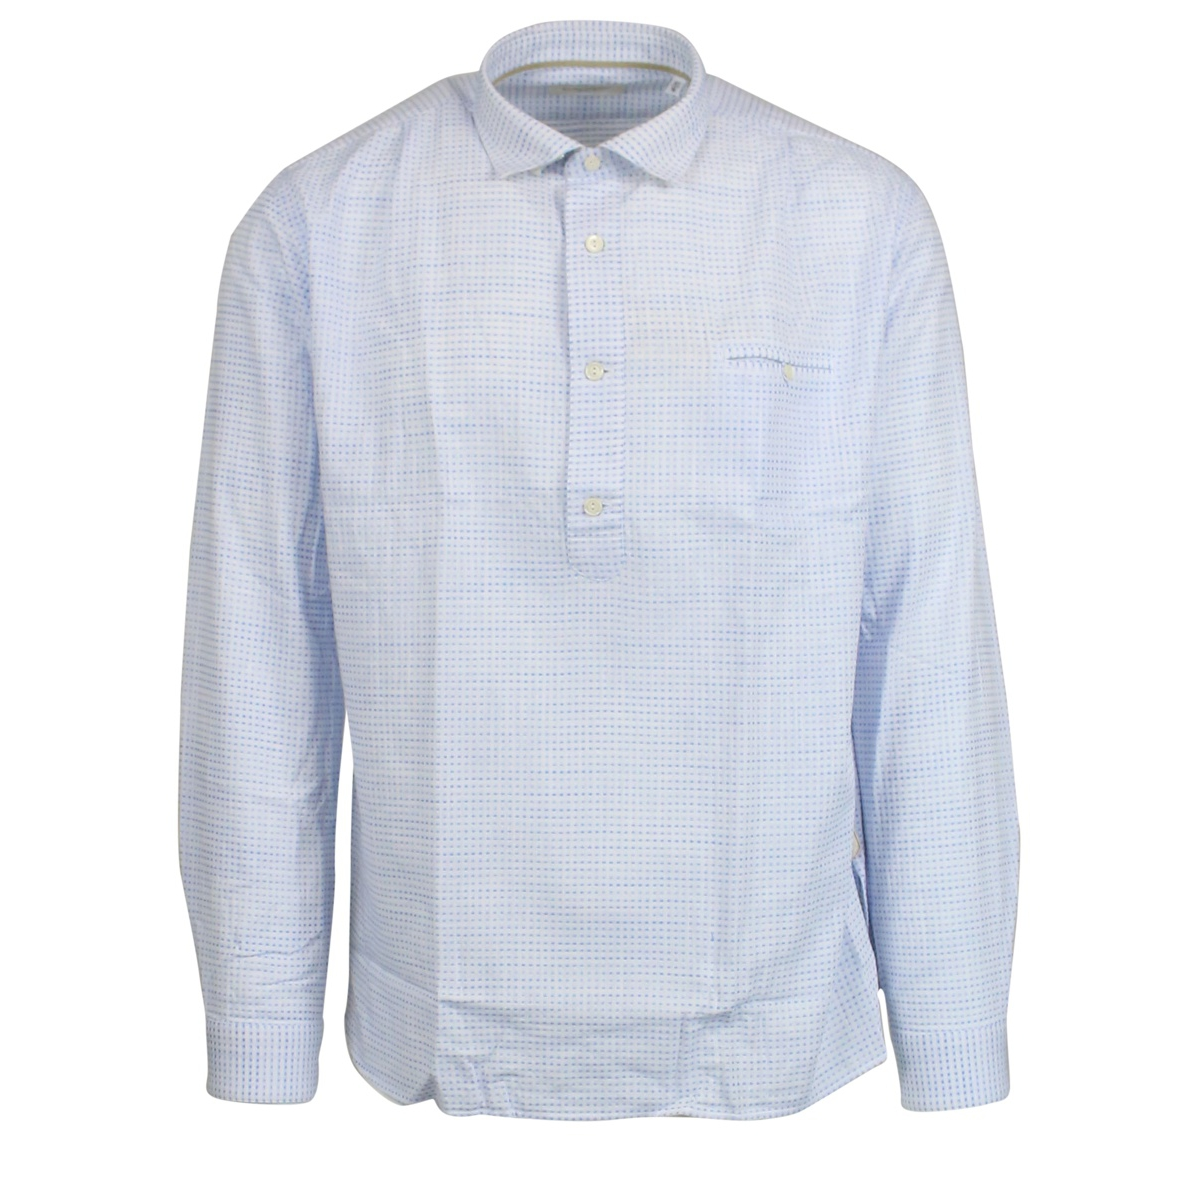 Micro-patterned shirt with French collar White TINTORIA MATTEI